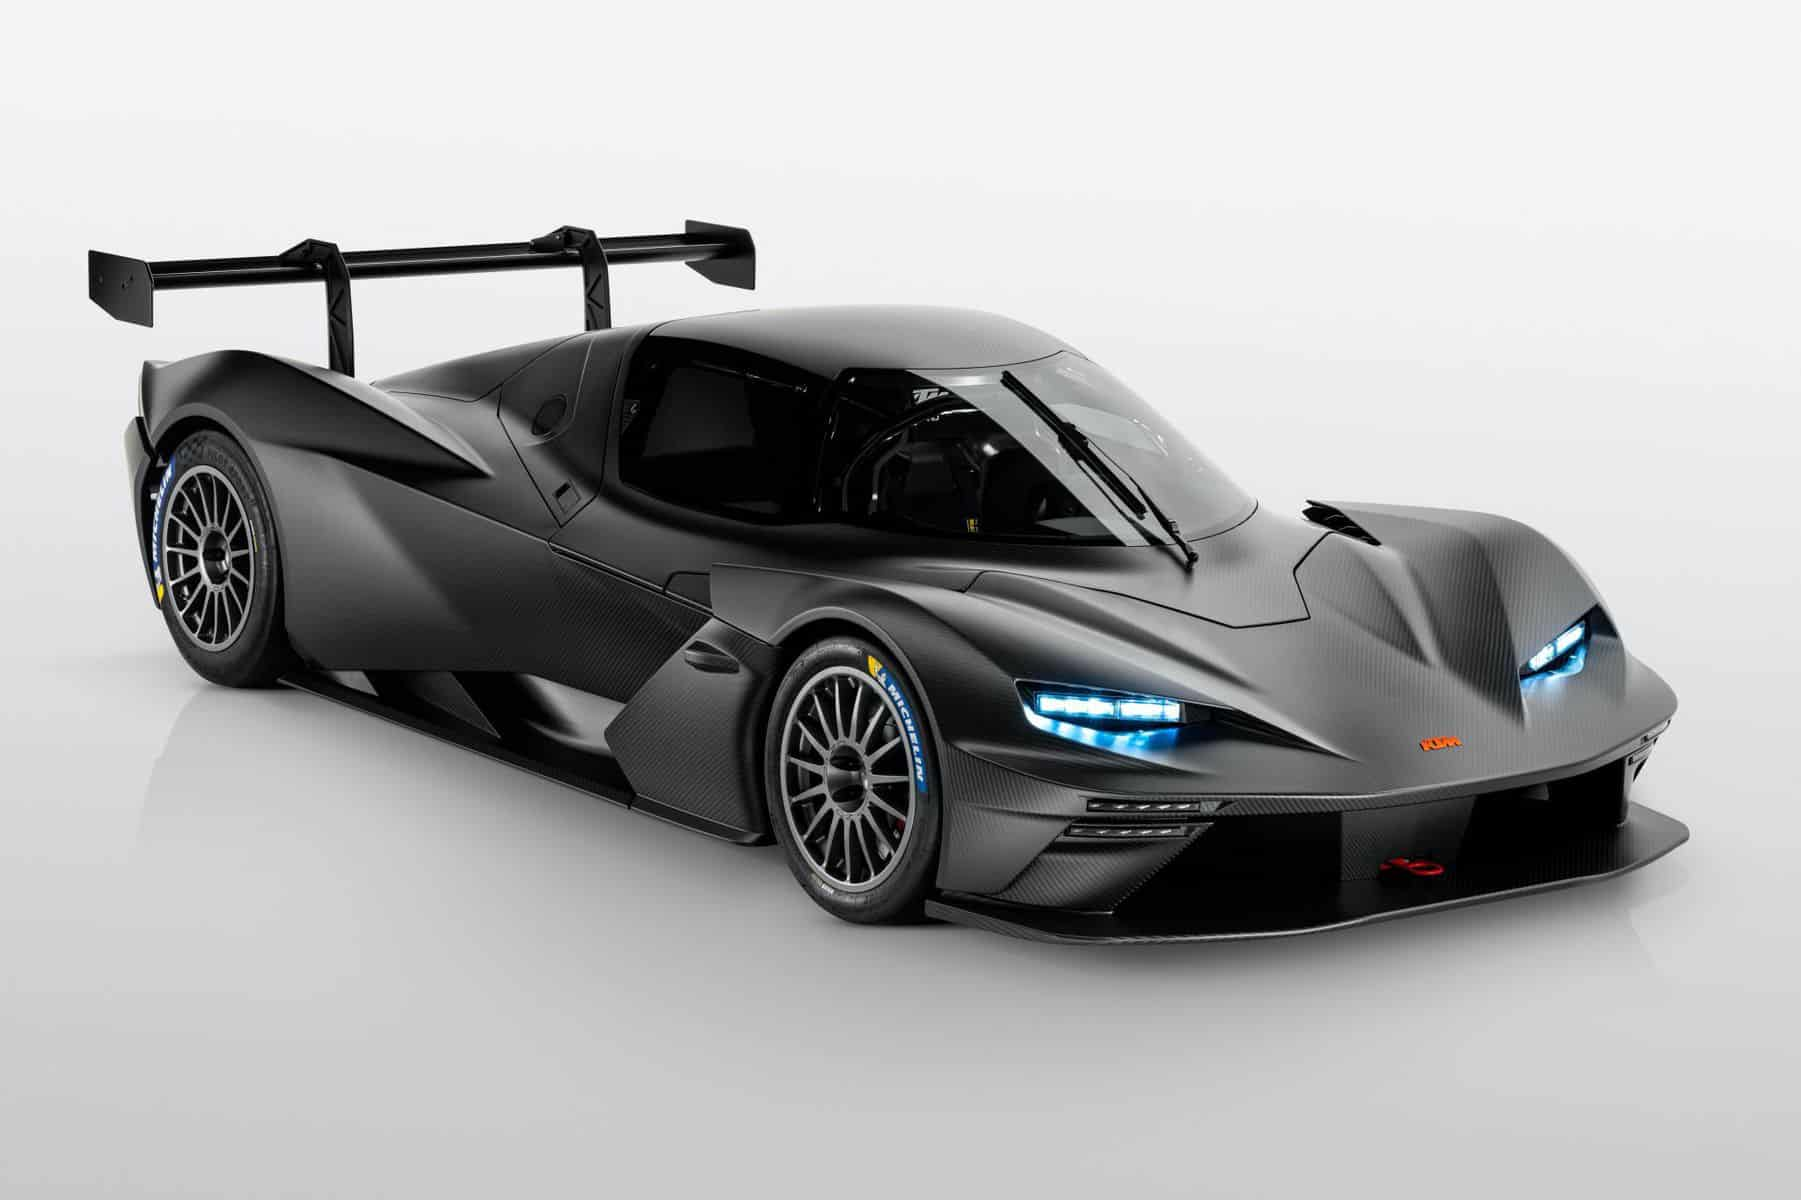 The KTM X-Bow GTX Looks Like the Ultimate Track Toy!